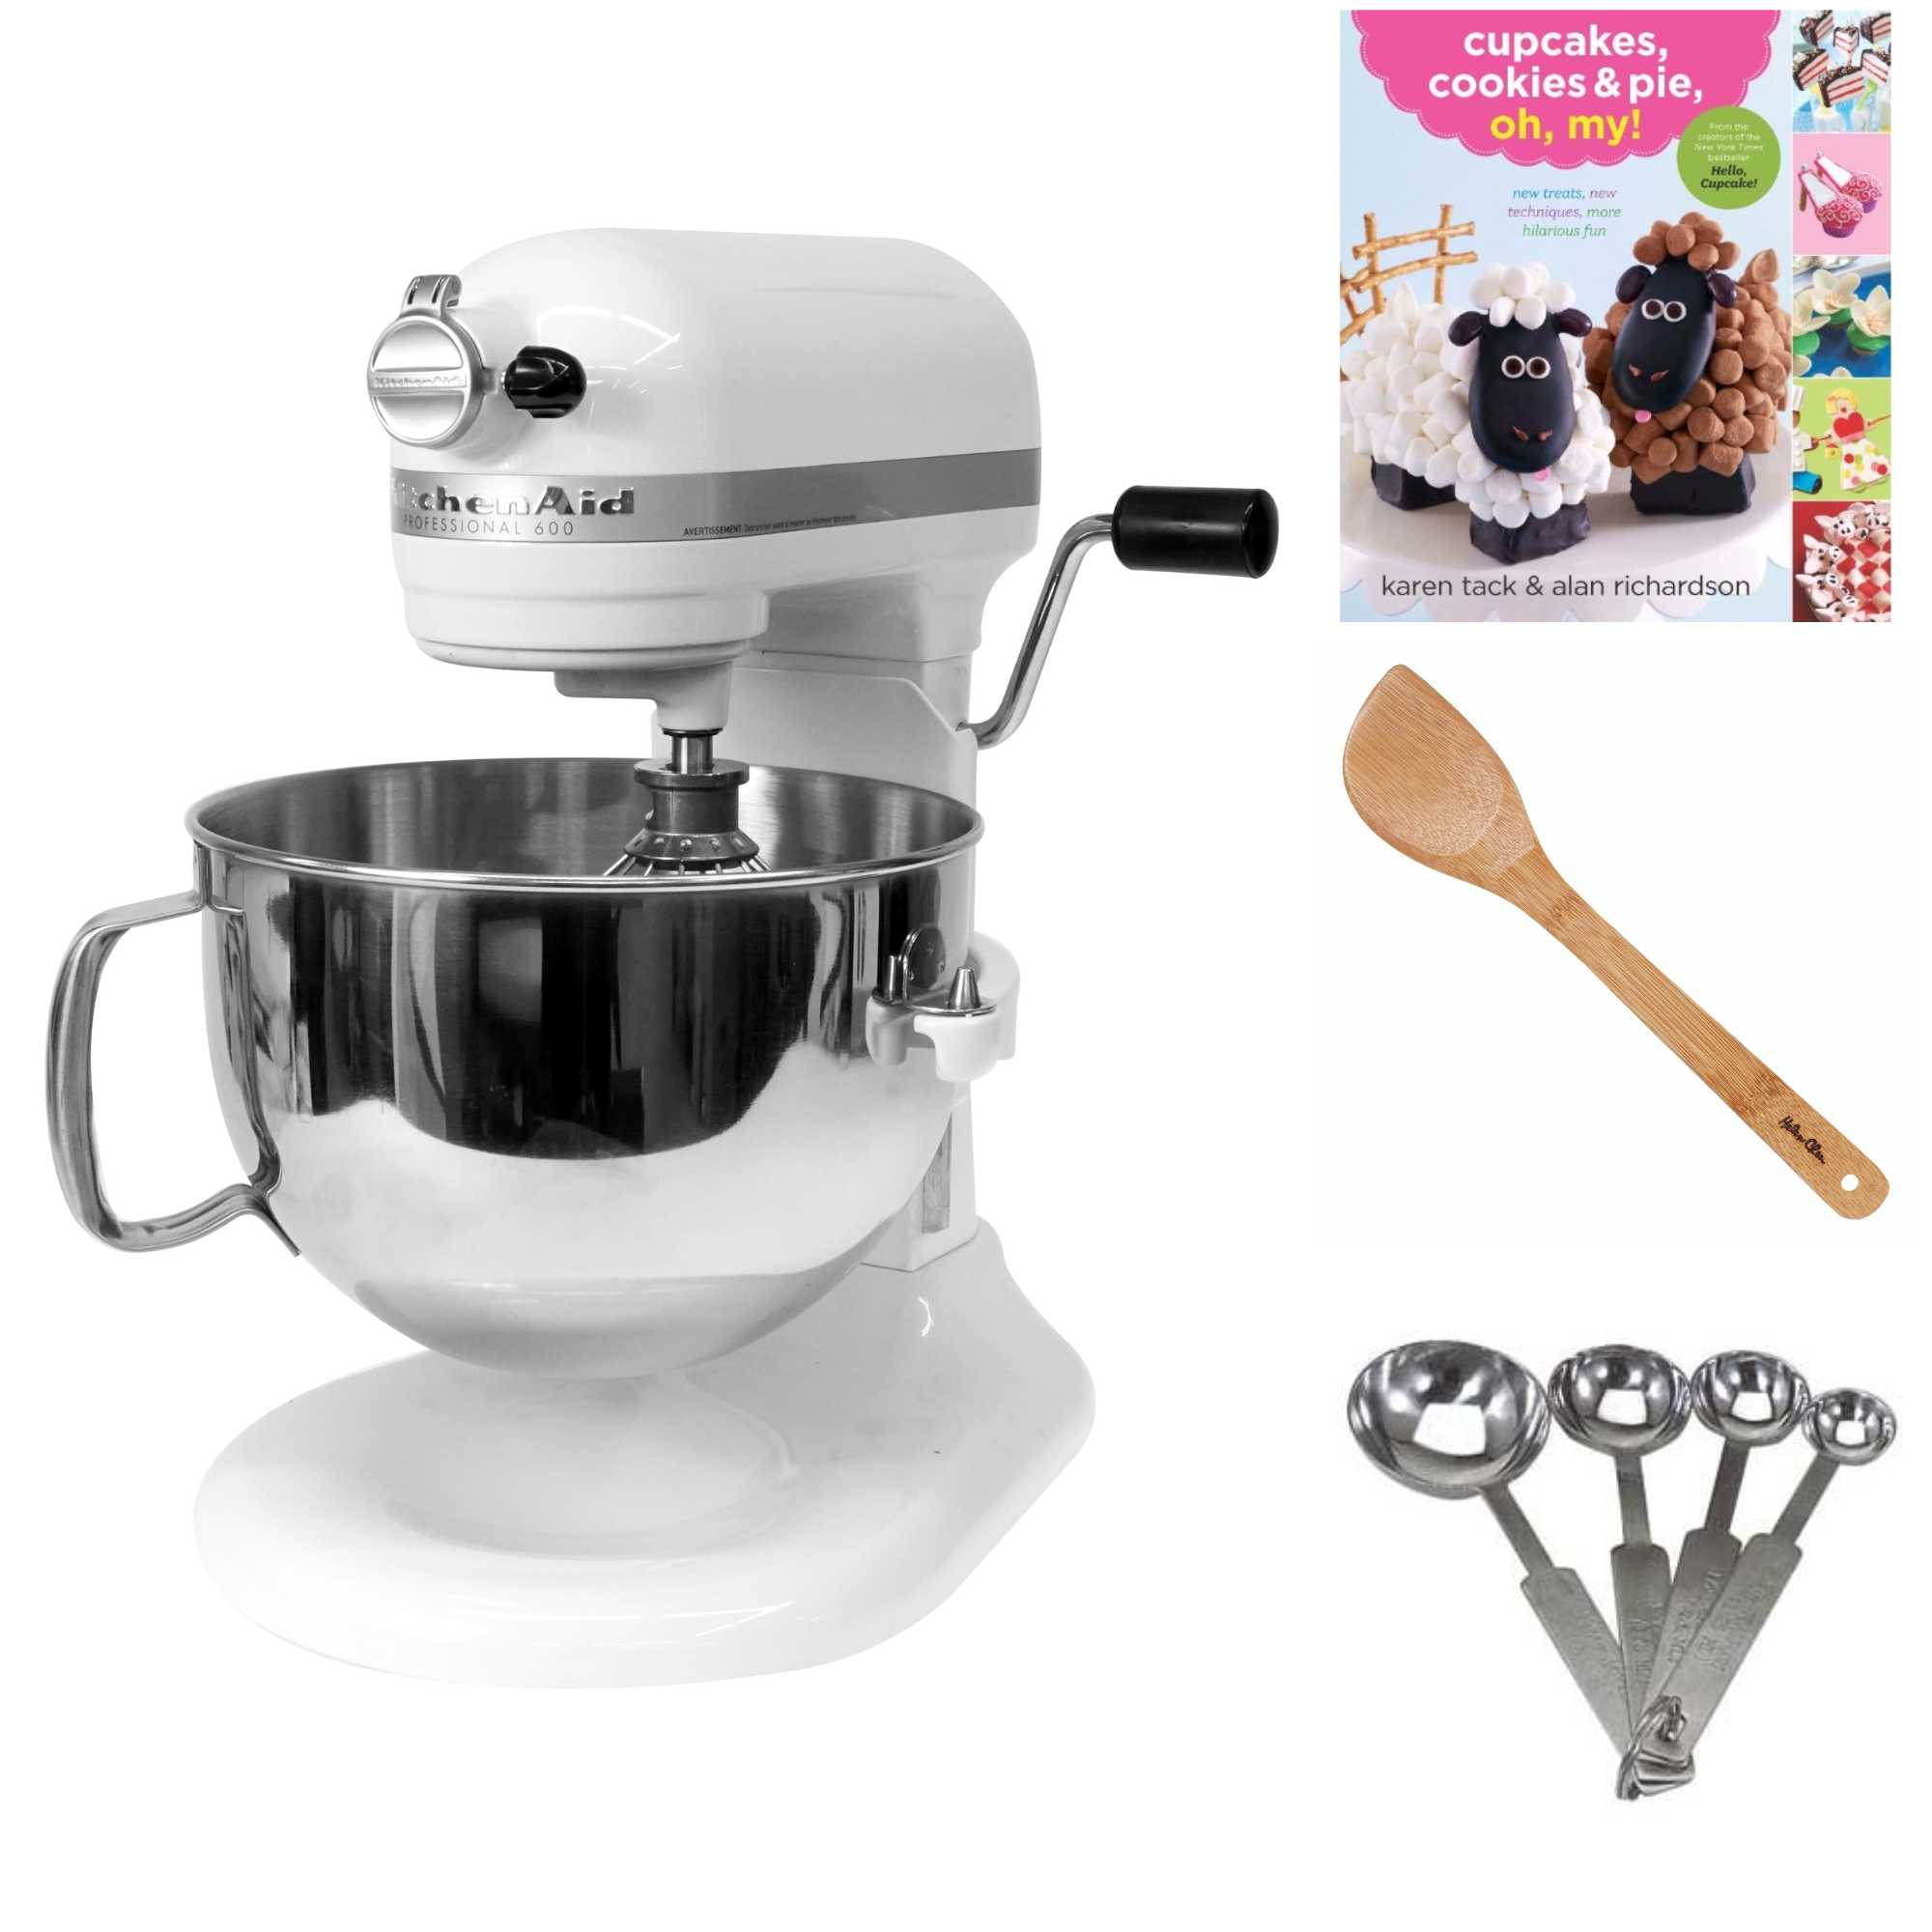 KitchenAid Pro 600 Series 6 Quart Bowl Lift Stand Mixer (White) Bundle